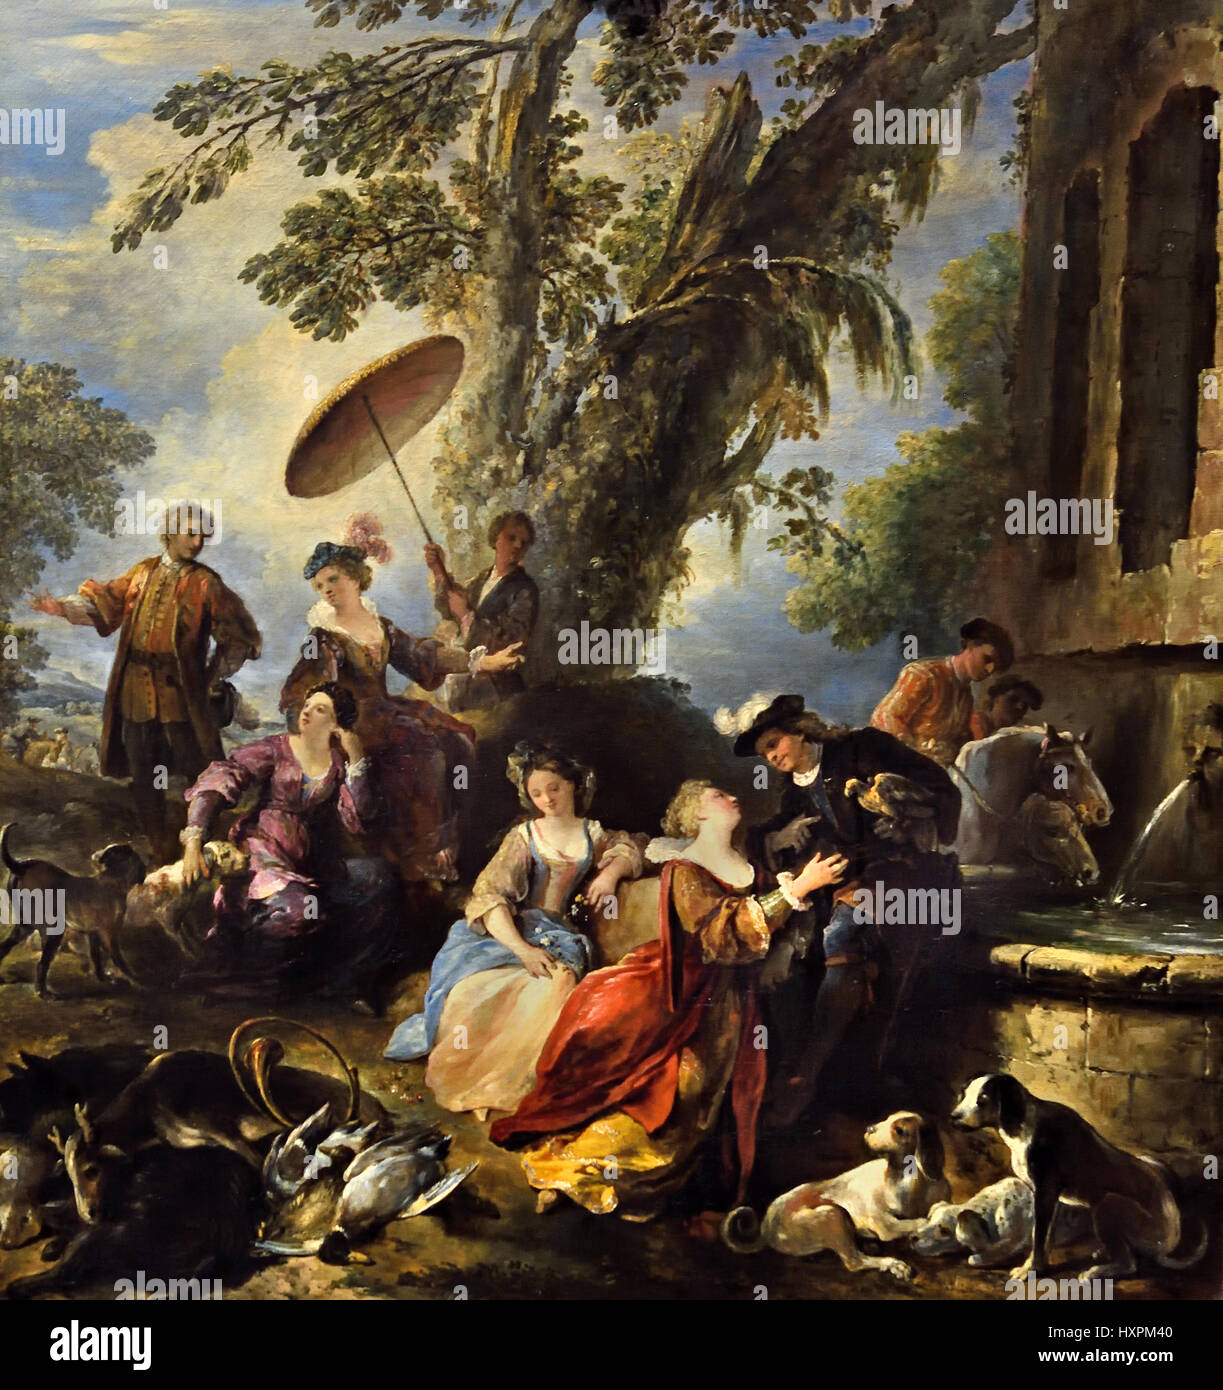 The Return from the Hunt 1700 Joseph Parrocel 1646 - 1704 France French - Stock Image